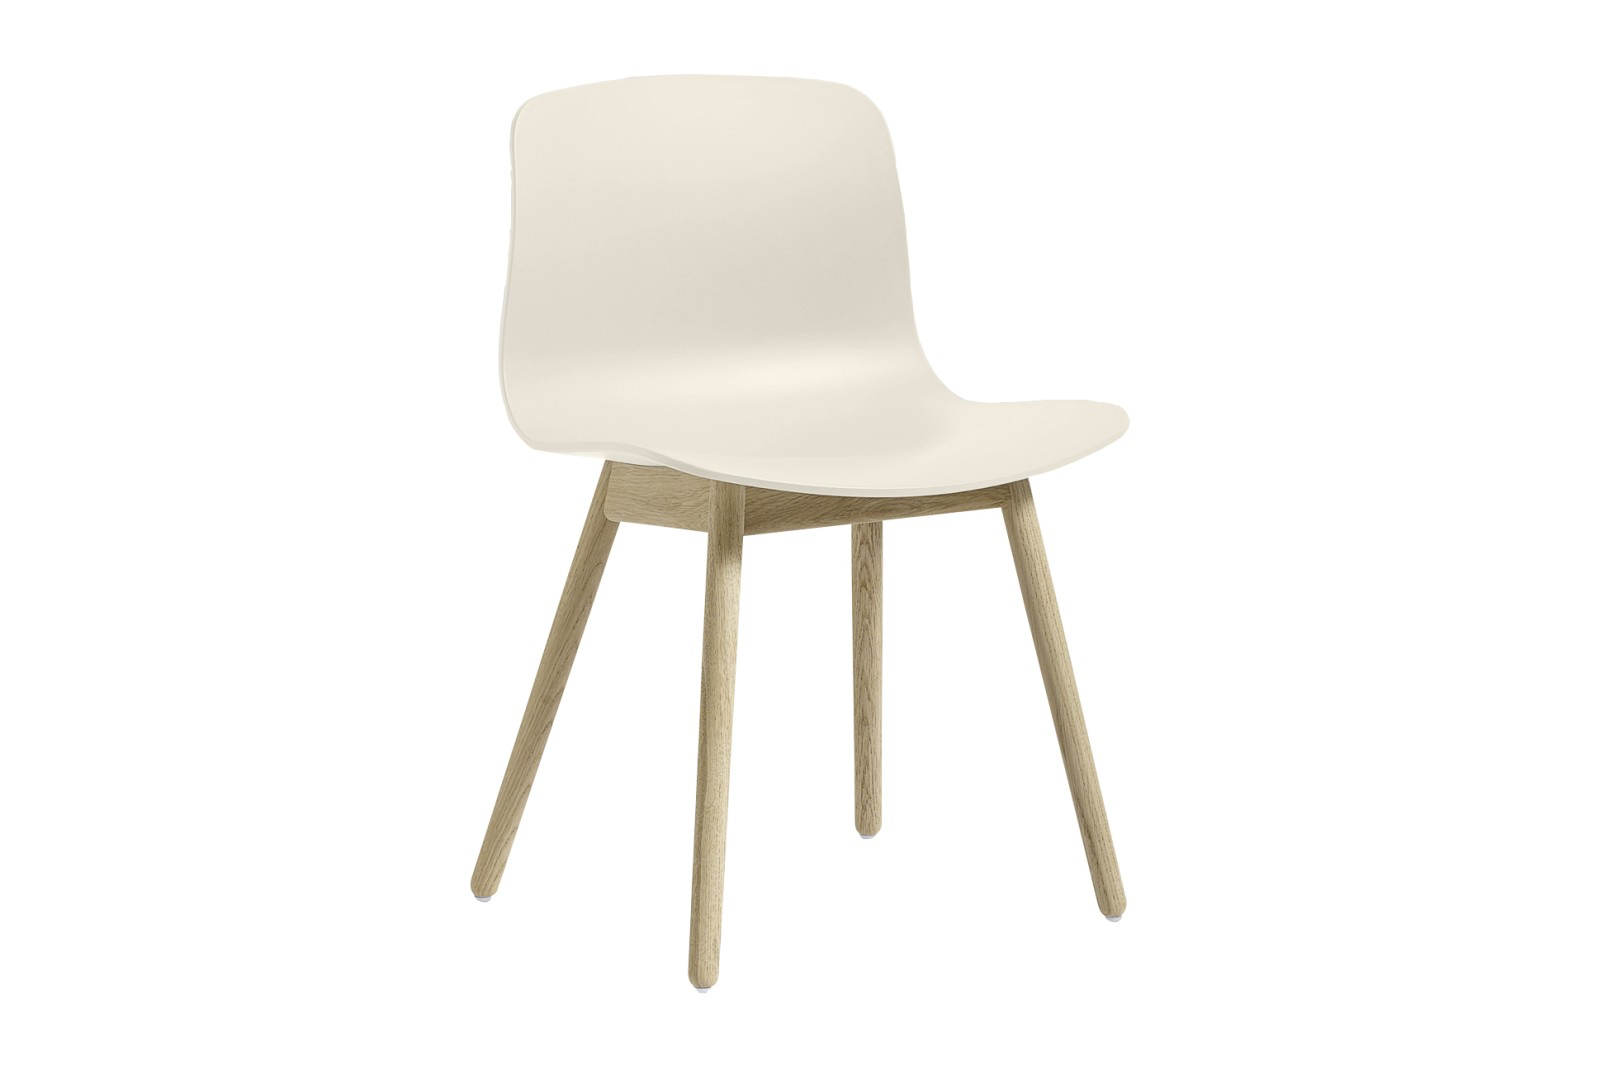 About A Chair AAC12 Cream White Seat and Soap Treated Oak Base